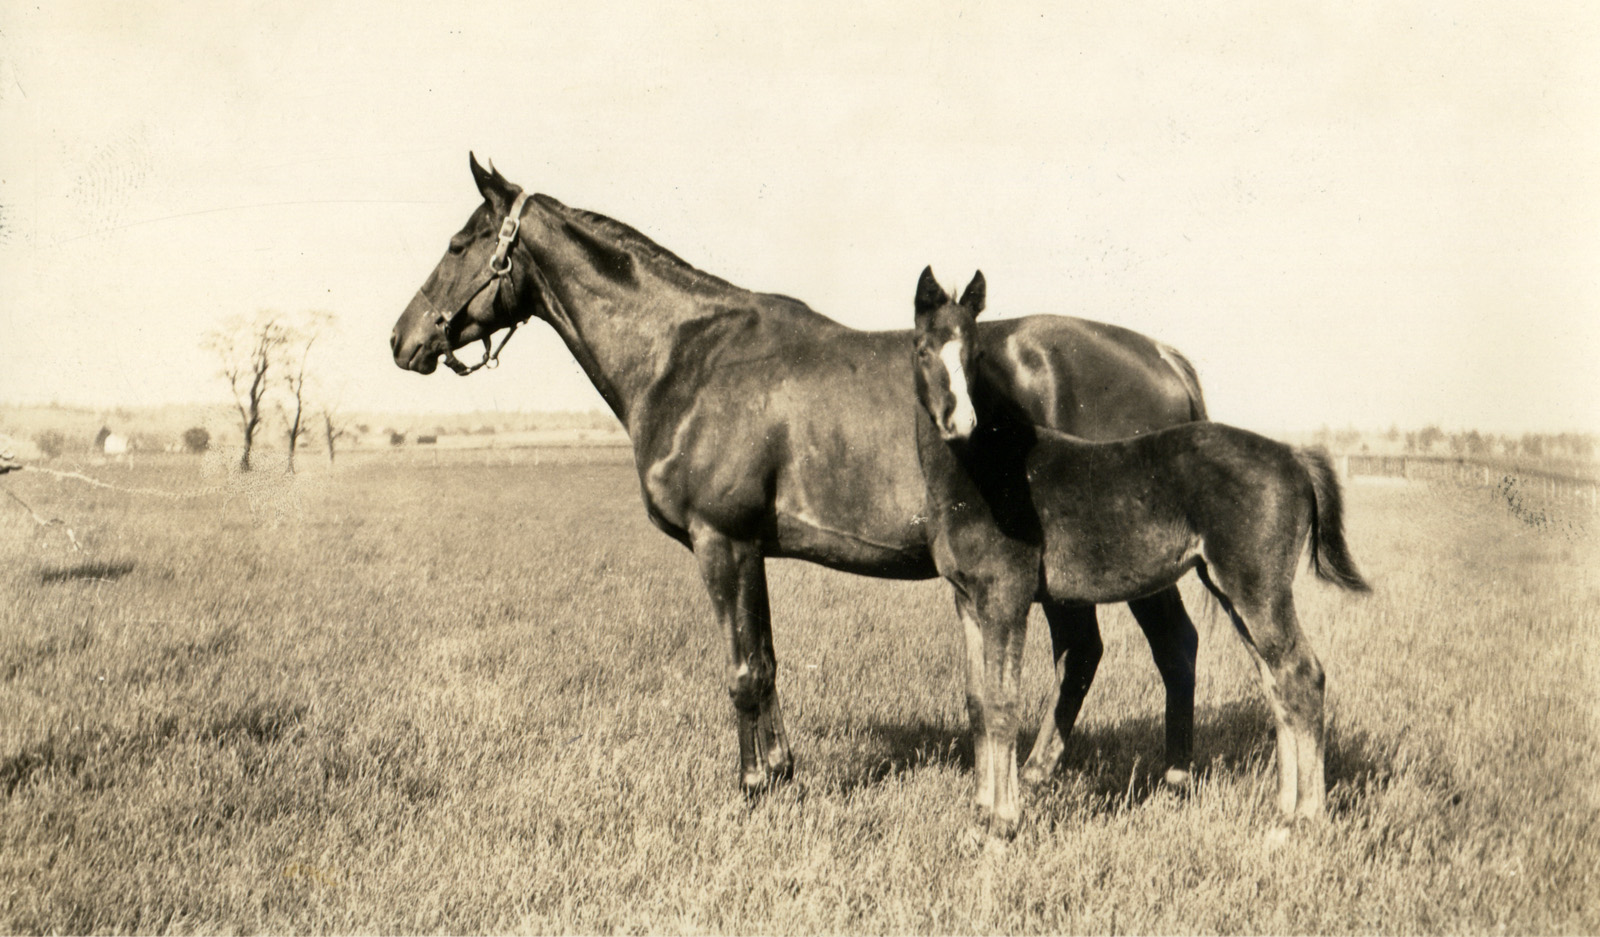 Marguerite with Gallant Fox as a foal, 1927 (L. S. Sutcliffe/Museum Collection)